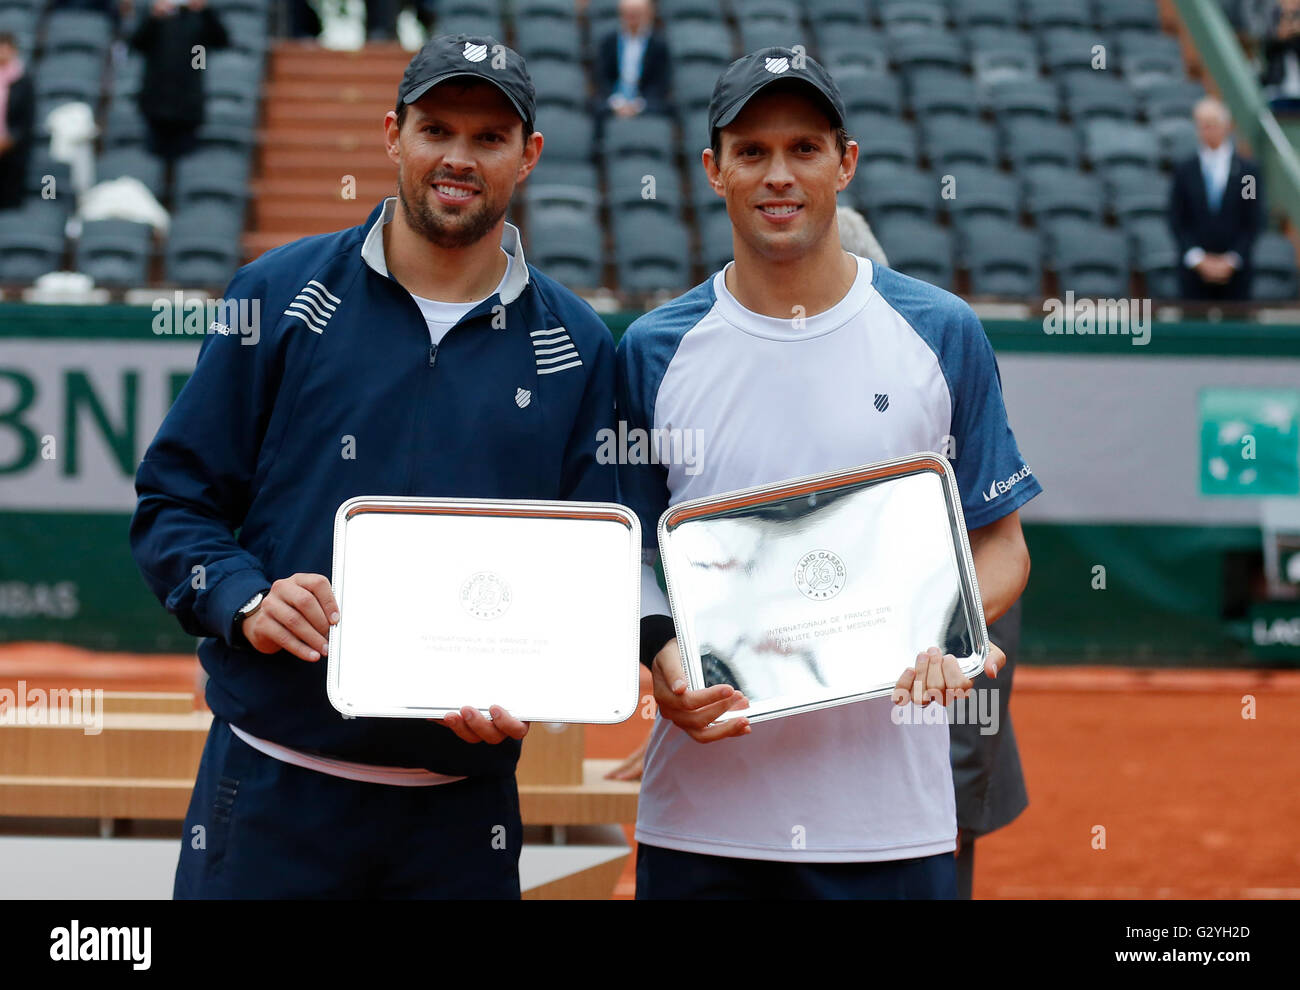 Paris, France. 4th June, 2016. Mike Bryan and Bob Bryan of the United States pose with the trophies during the awarding - Stock Image